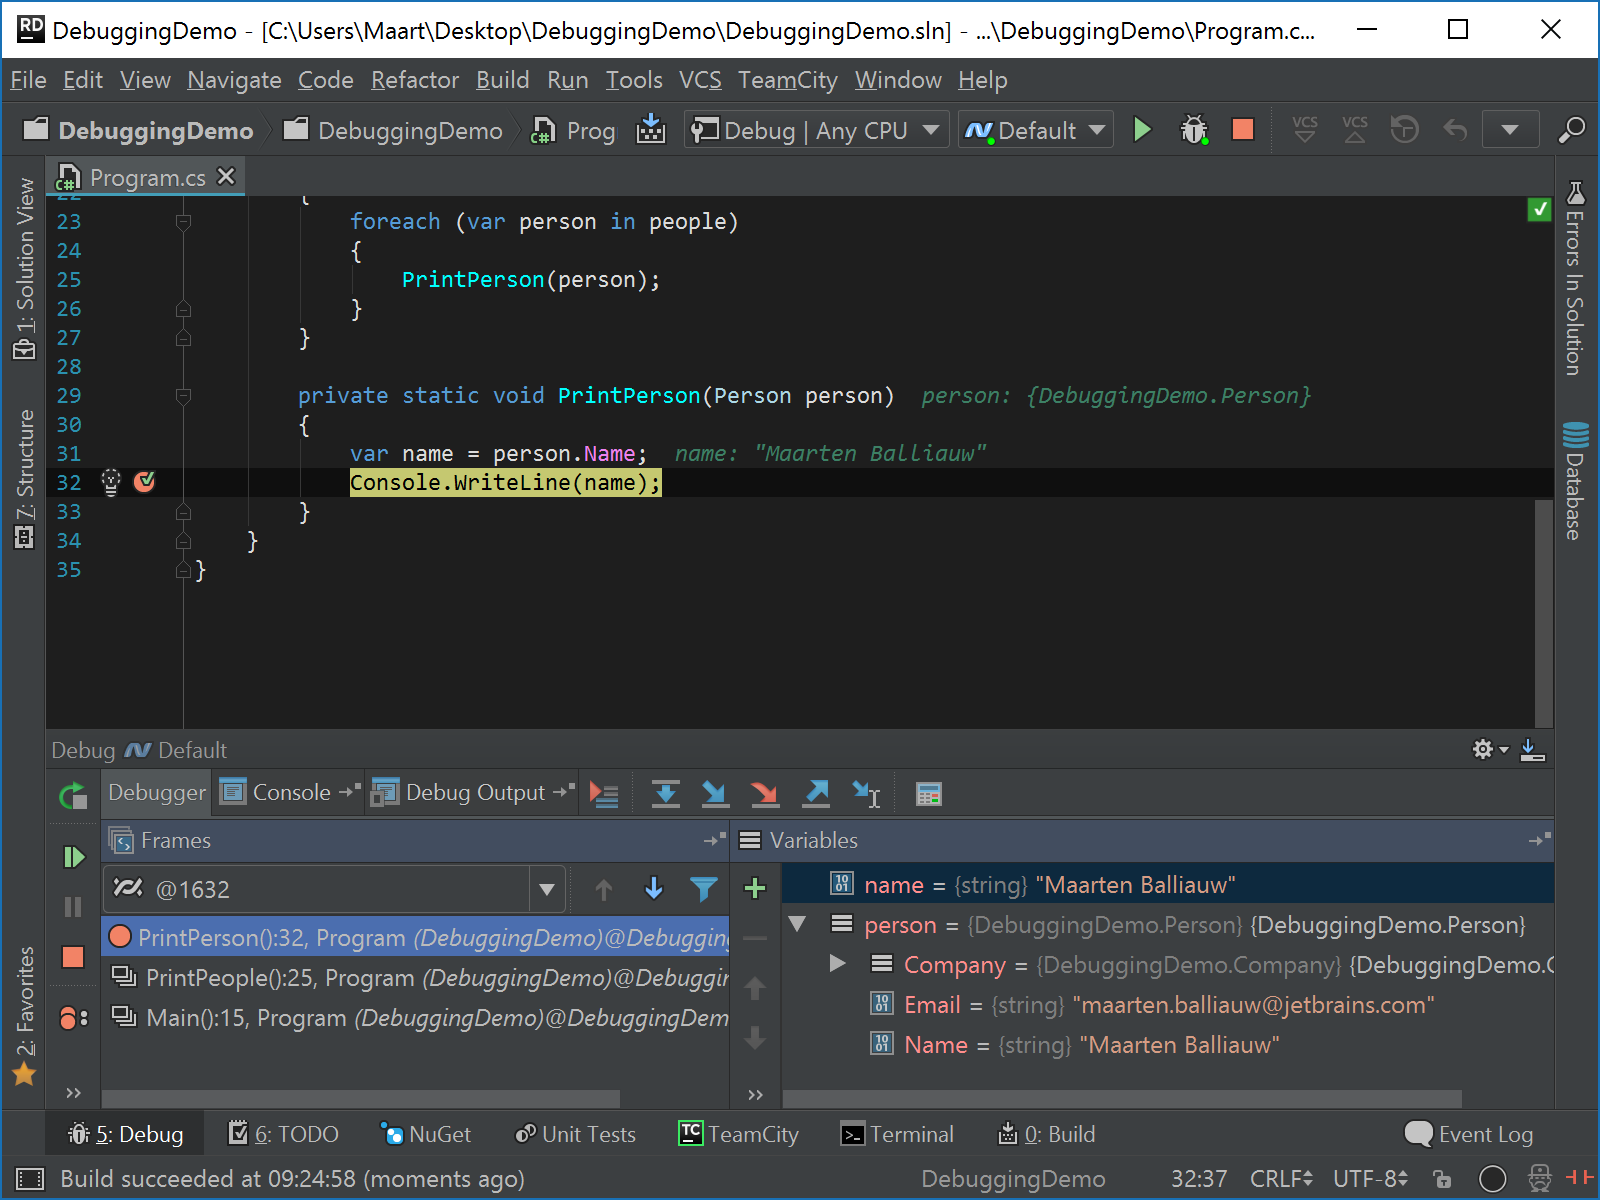 Overview of the debugger tool window after hitting a breakpoint